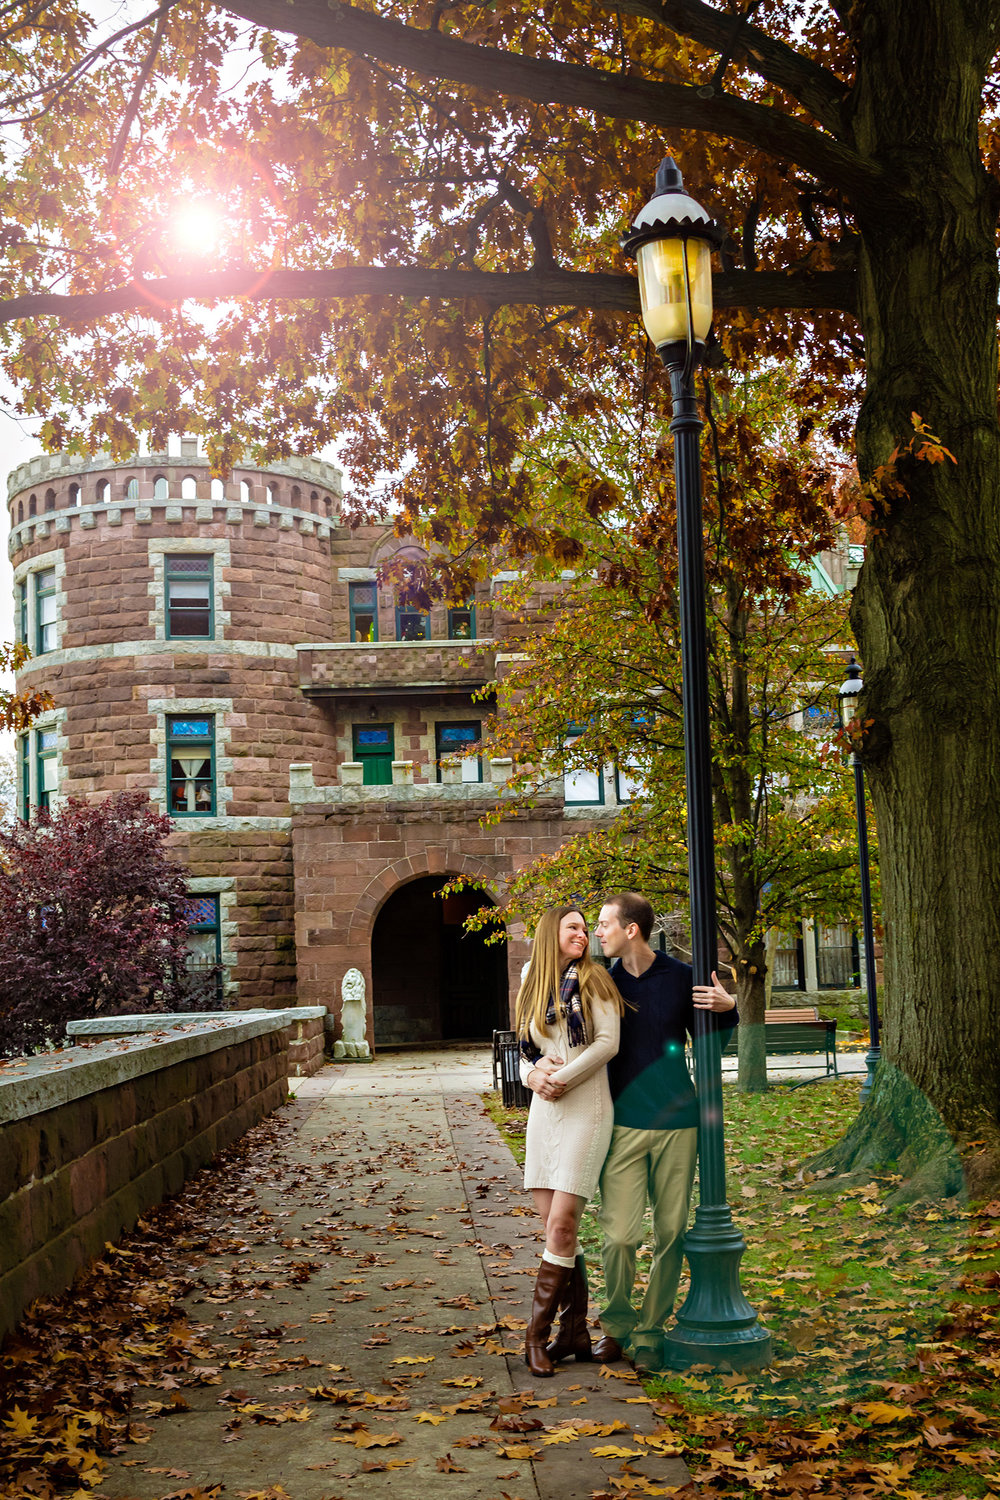 Photos of an engaged couple by the lamp post at Lambert Castle in Paterson